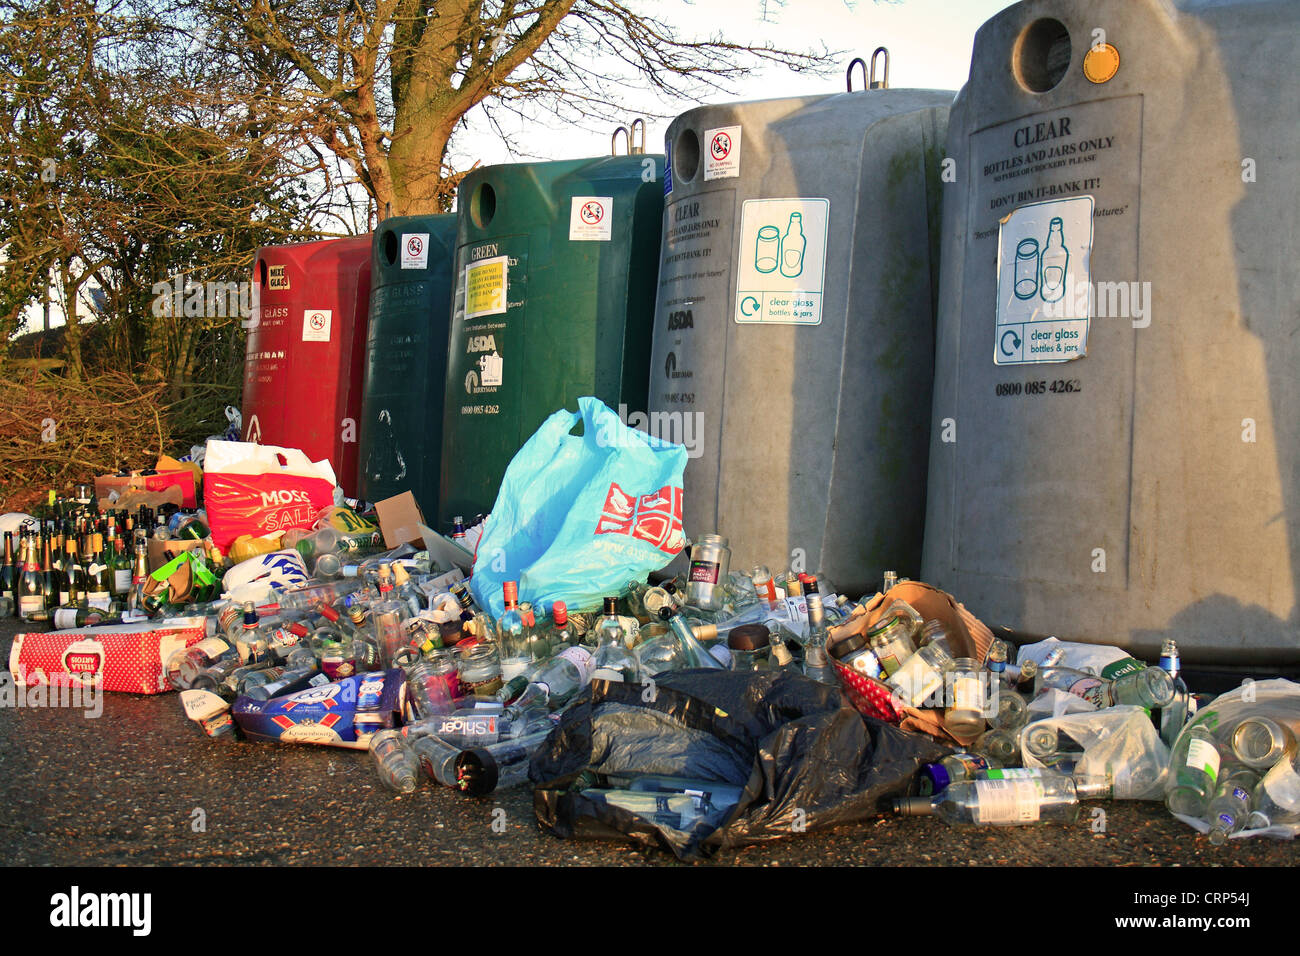 Bottlebanks for glass recycling, overflowing after Christmas, Bacton, Suffolk, England, january - Stock Image